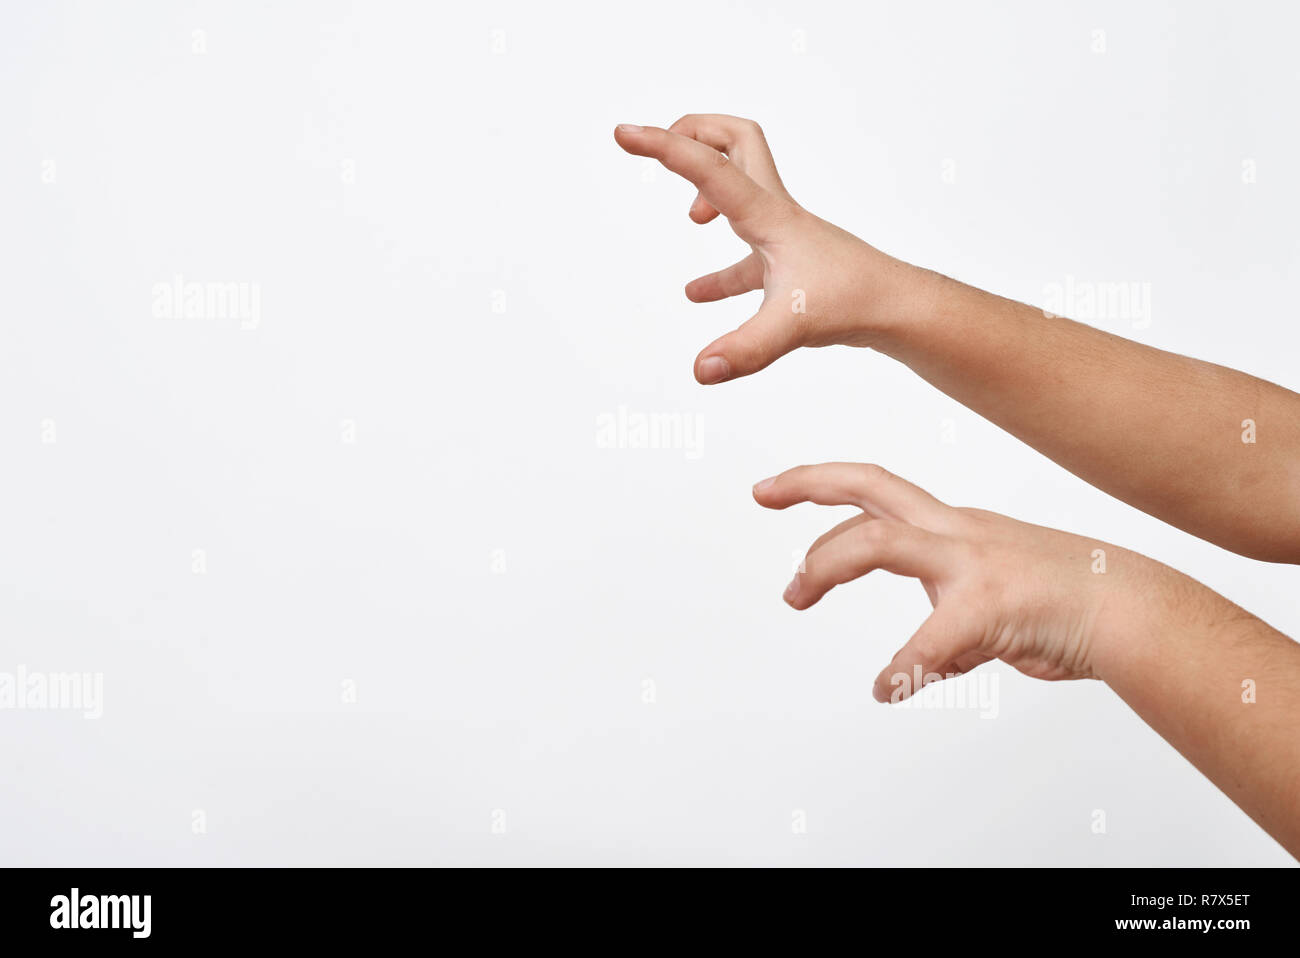 Kid hands trying to scare .Childish intimidation. - Stock Image